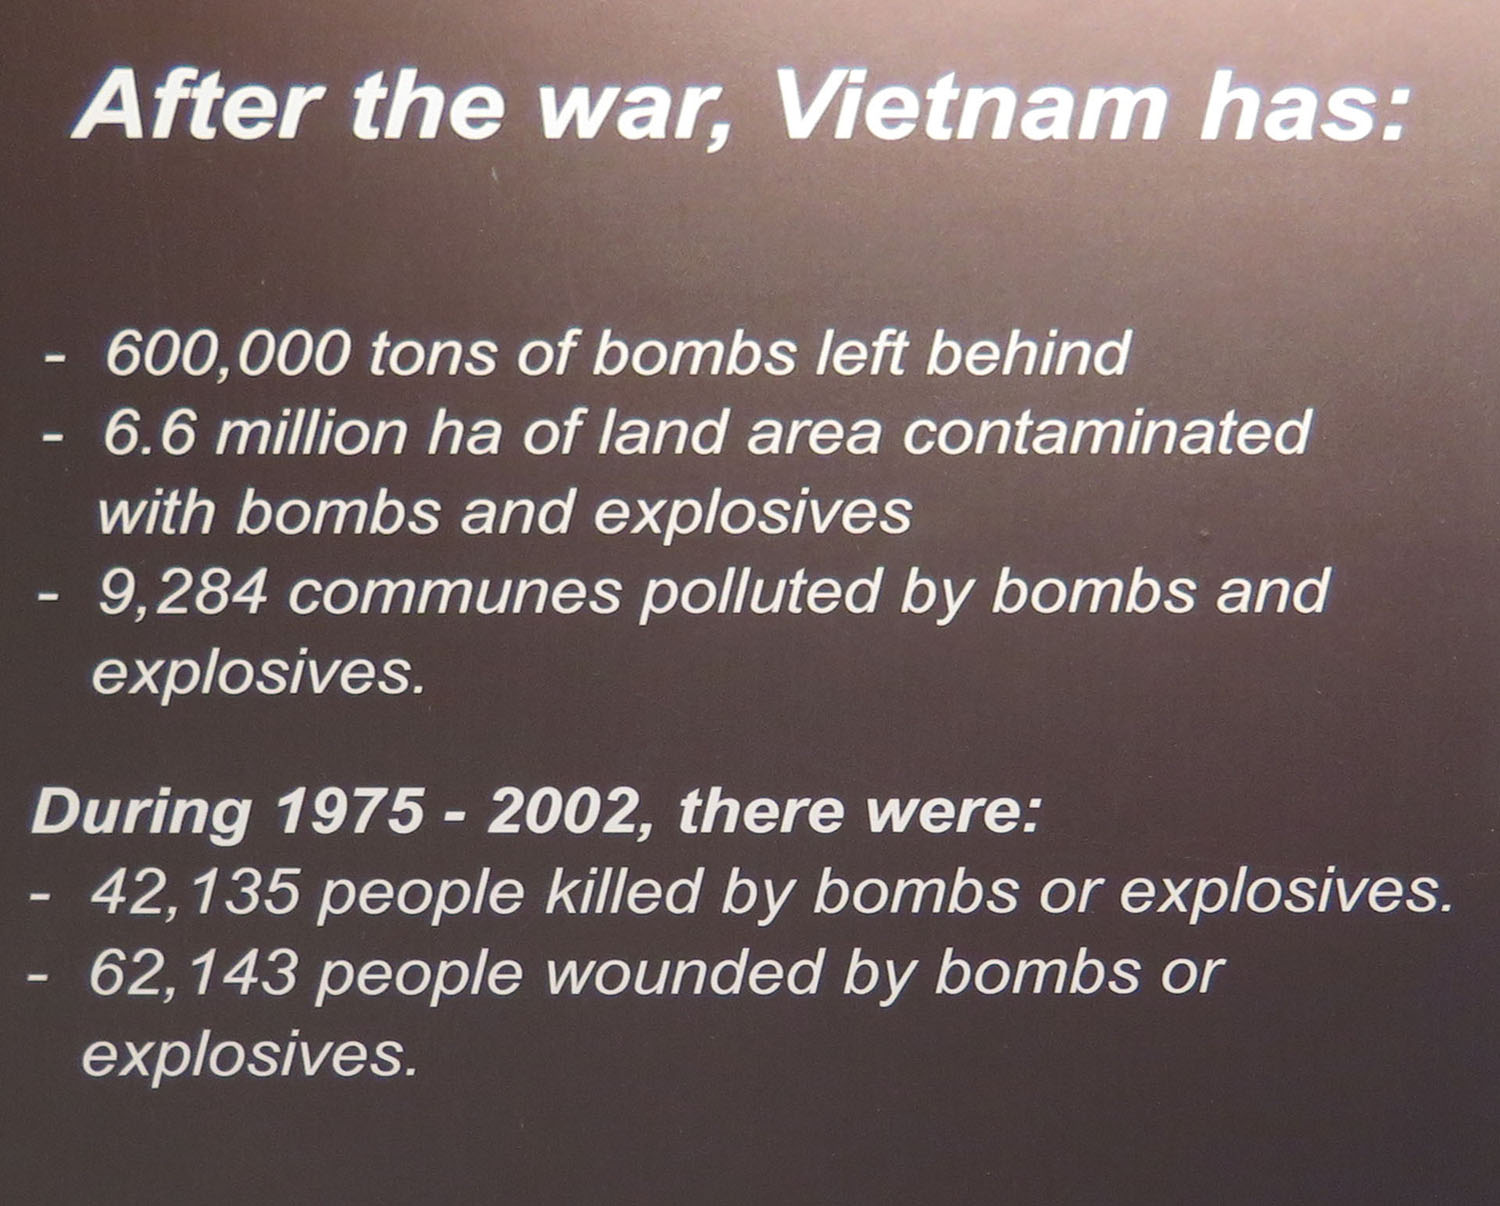 Vietnam-Ho-Chi-Minh-City-War-Remnants-Museum-Unexploded-Ordnance-Legacy